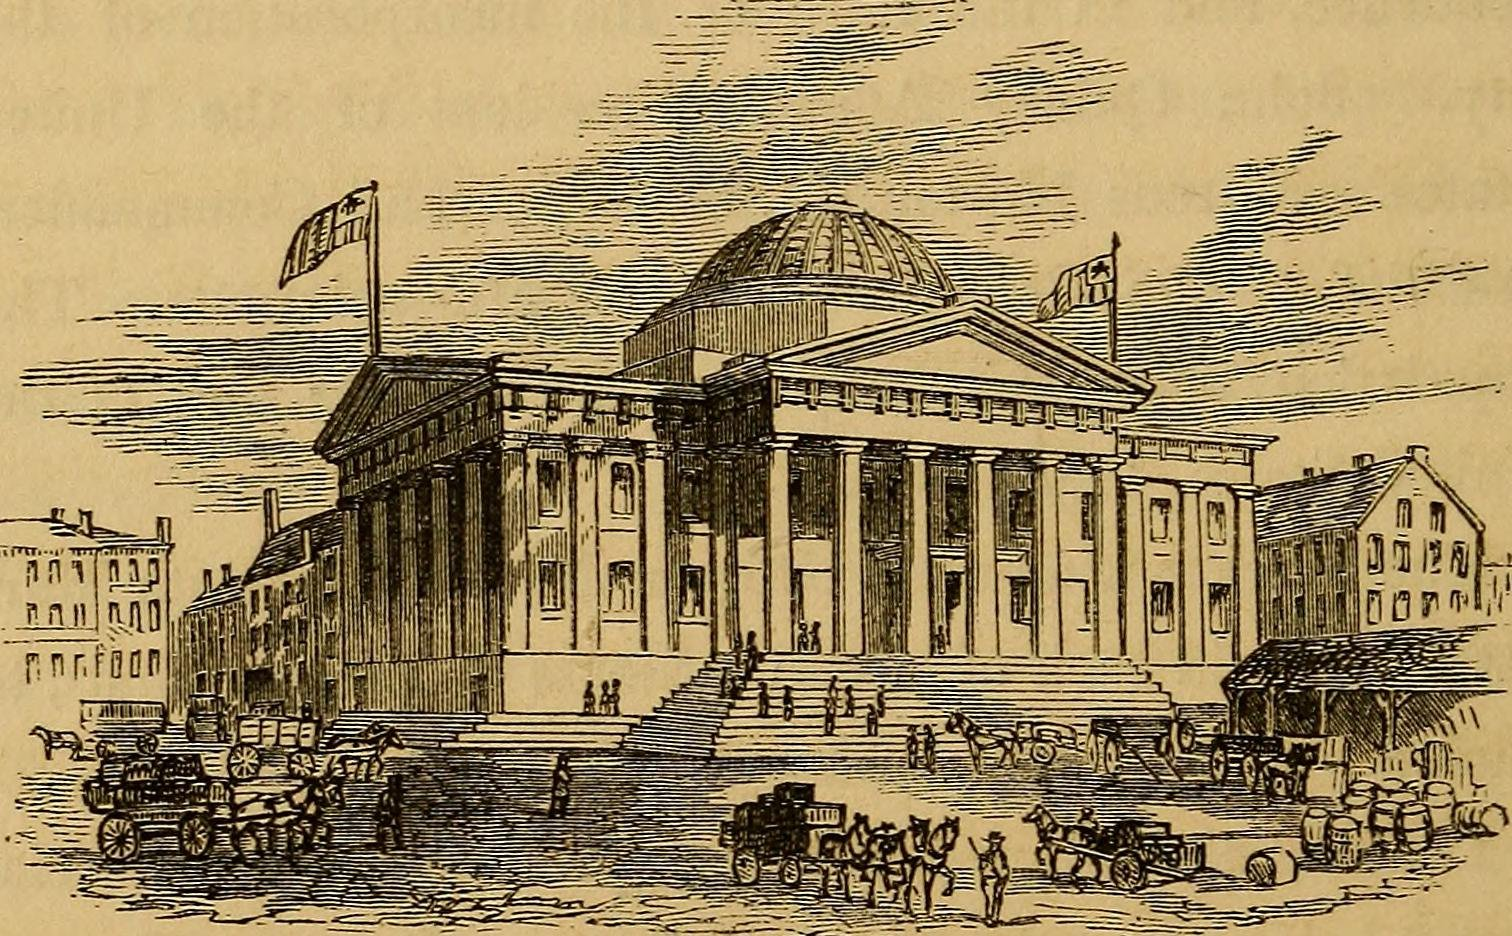 The original structure of what is now the Custom House. This render represents the structure in 1856, before the clock tower addition was built. Photo used with permission: https://www.flickr.com/photos/126377022@N07/1478015565